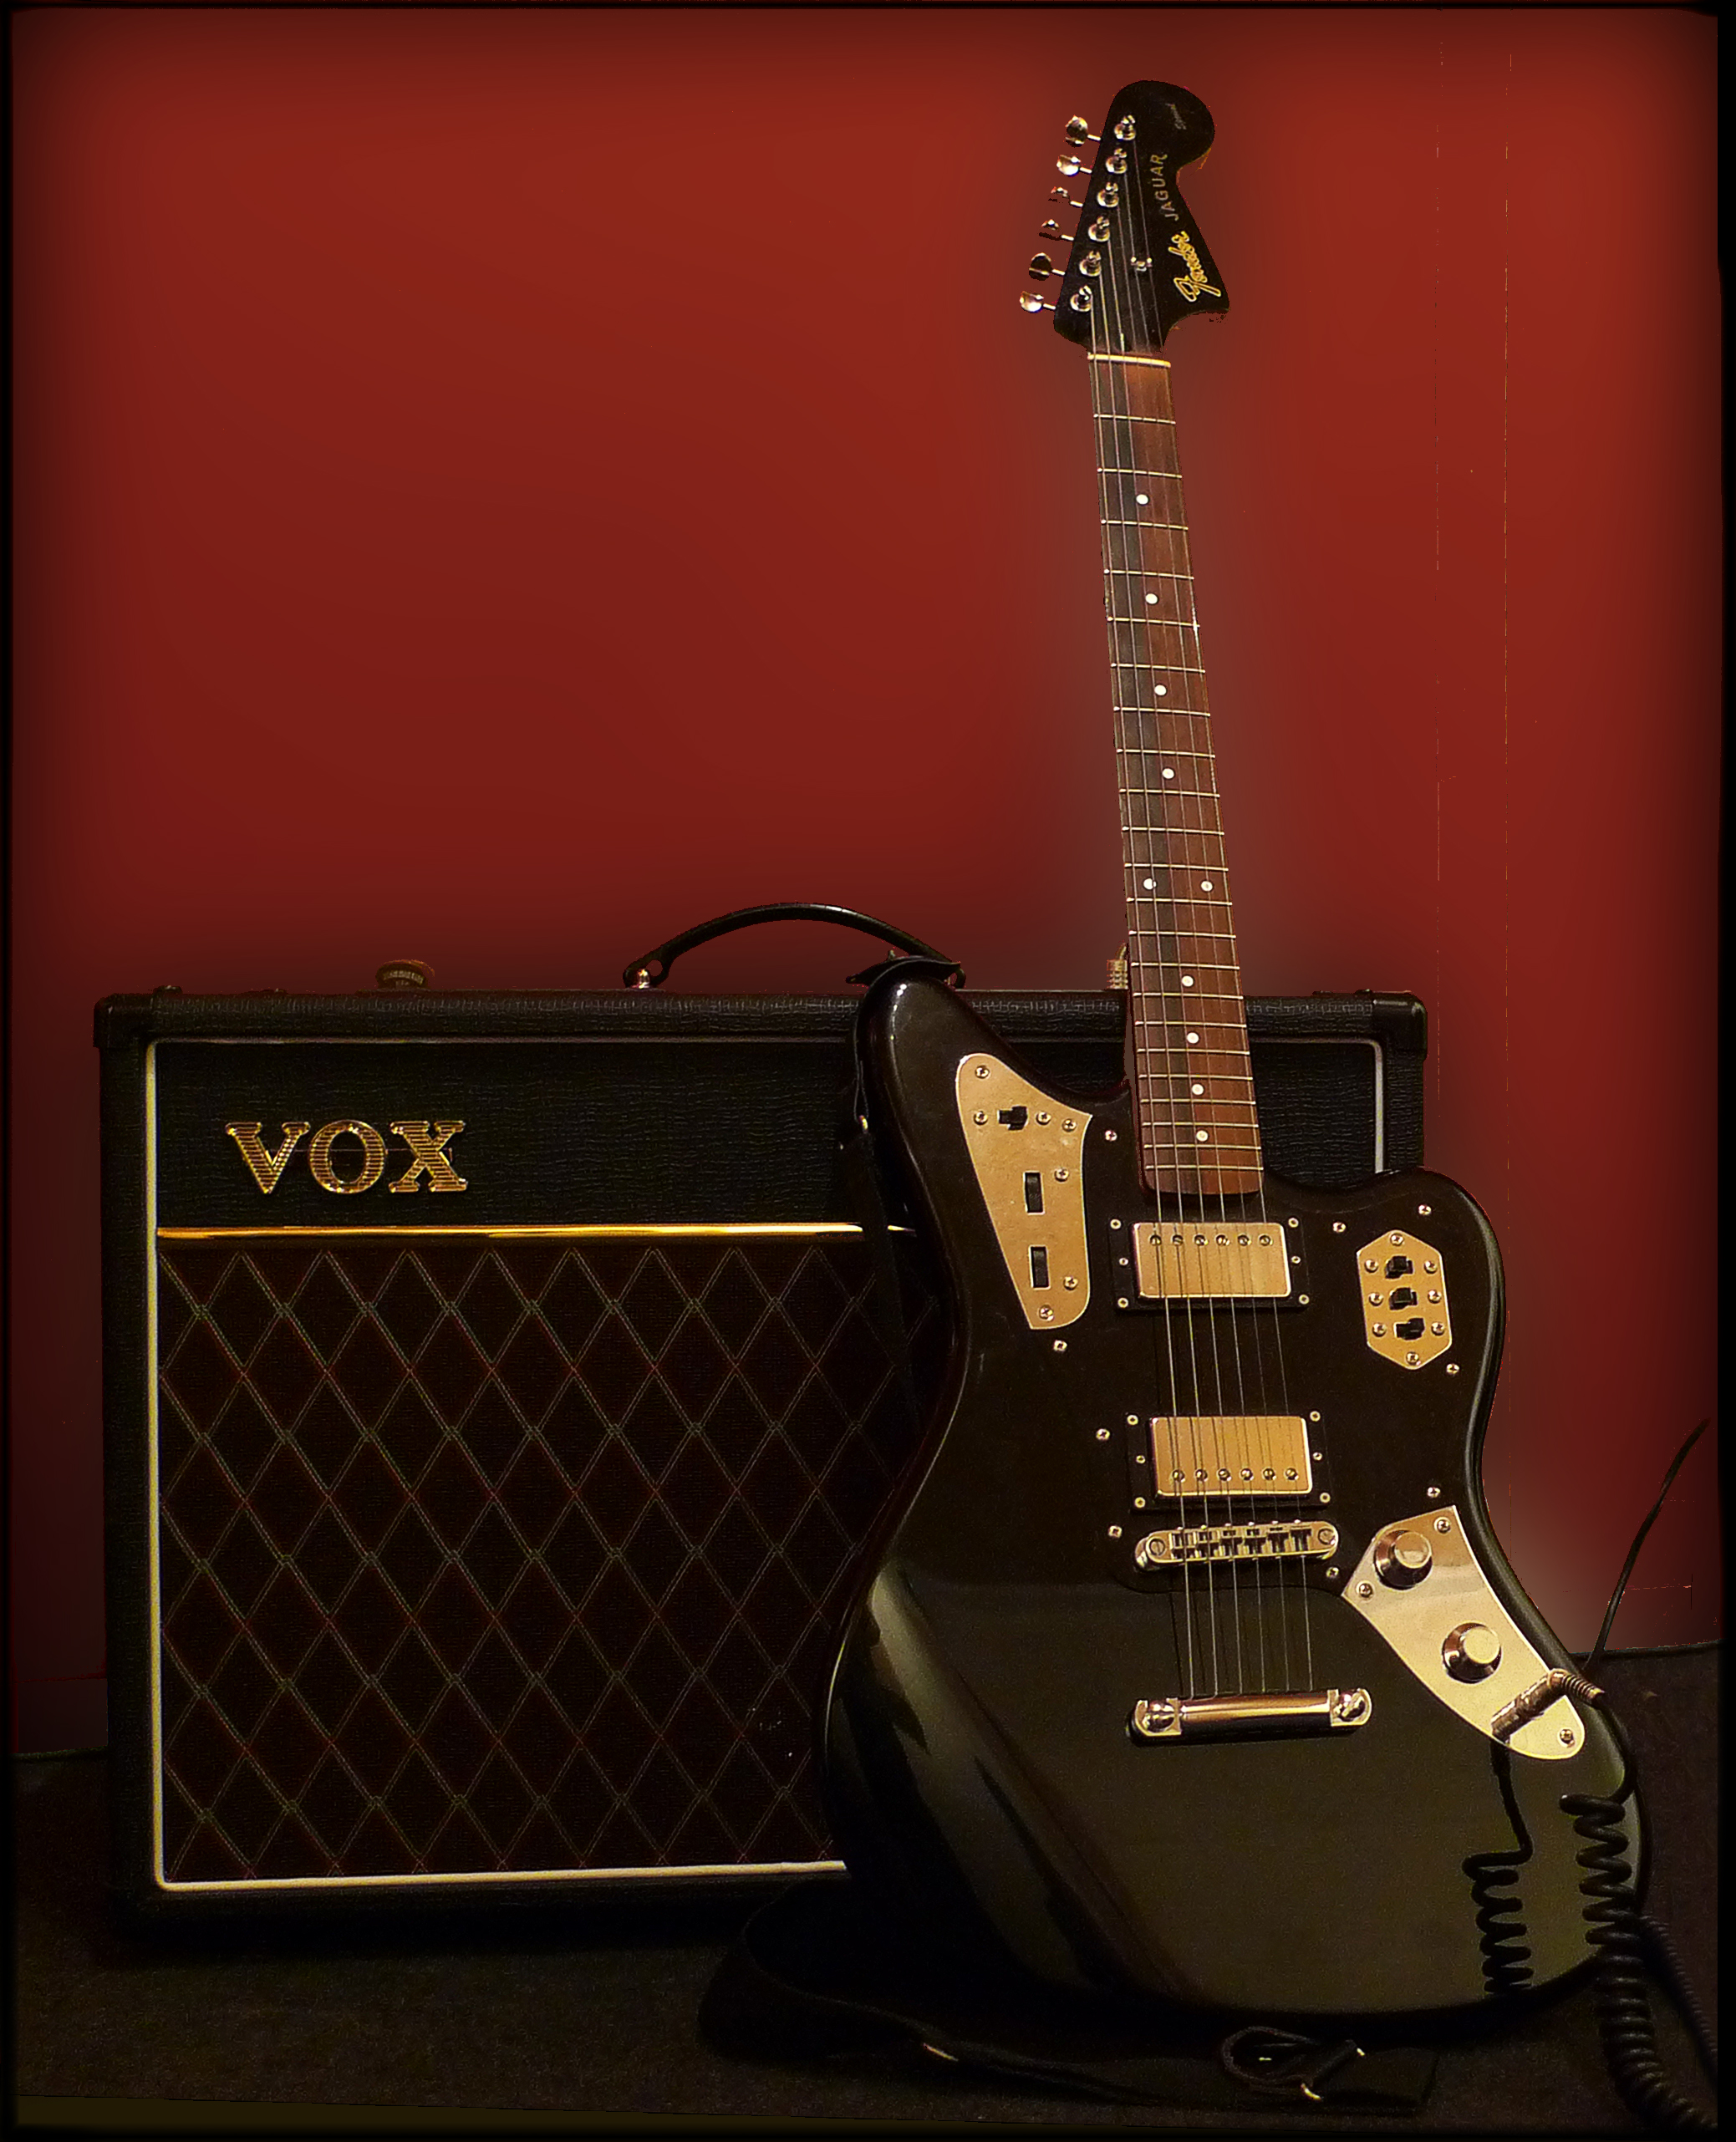 fender jaguar wallpaper - photo #13